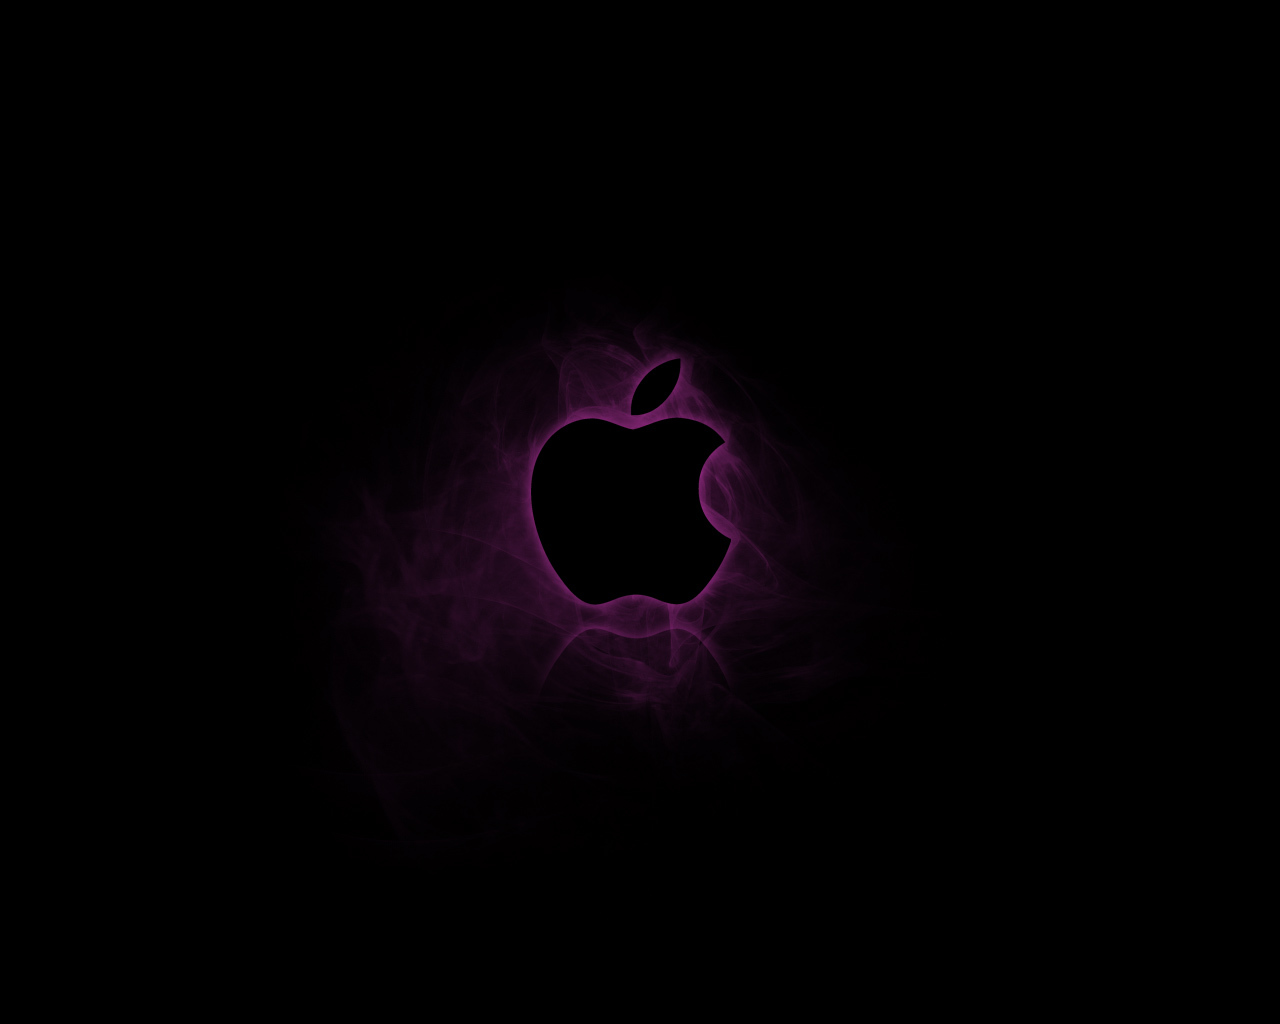 dark apple inc logos